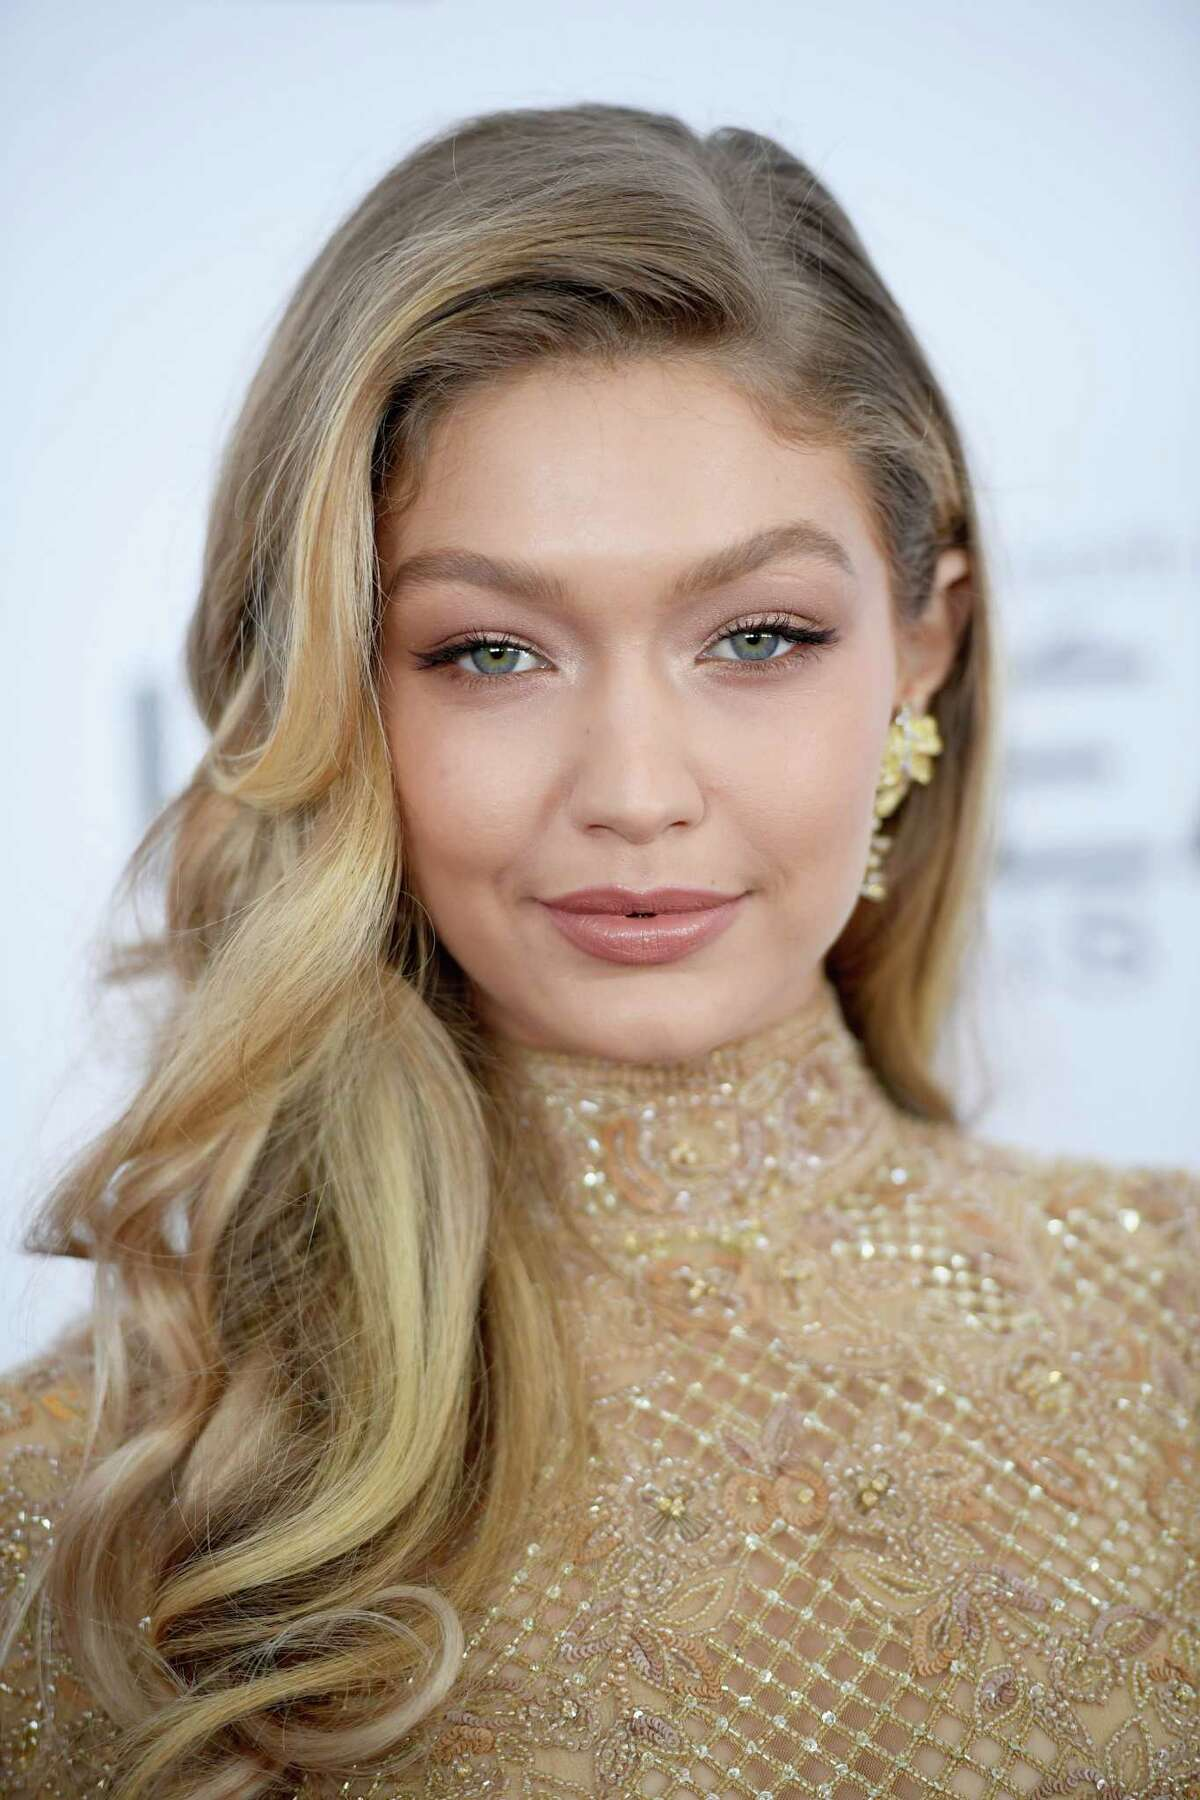 BROOKLYN, NY - NOVEMBER 13: Gigi Hadid attends Glamour's 2017 Women of The Year Awards at Kings Theatre on November 13, 2017 in Brooklyn, New York. (Photo by Dimitrios Kambouris/Getty Images for Glamour)